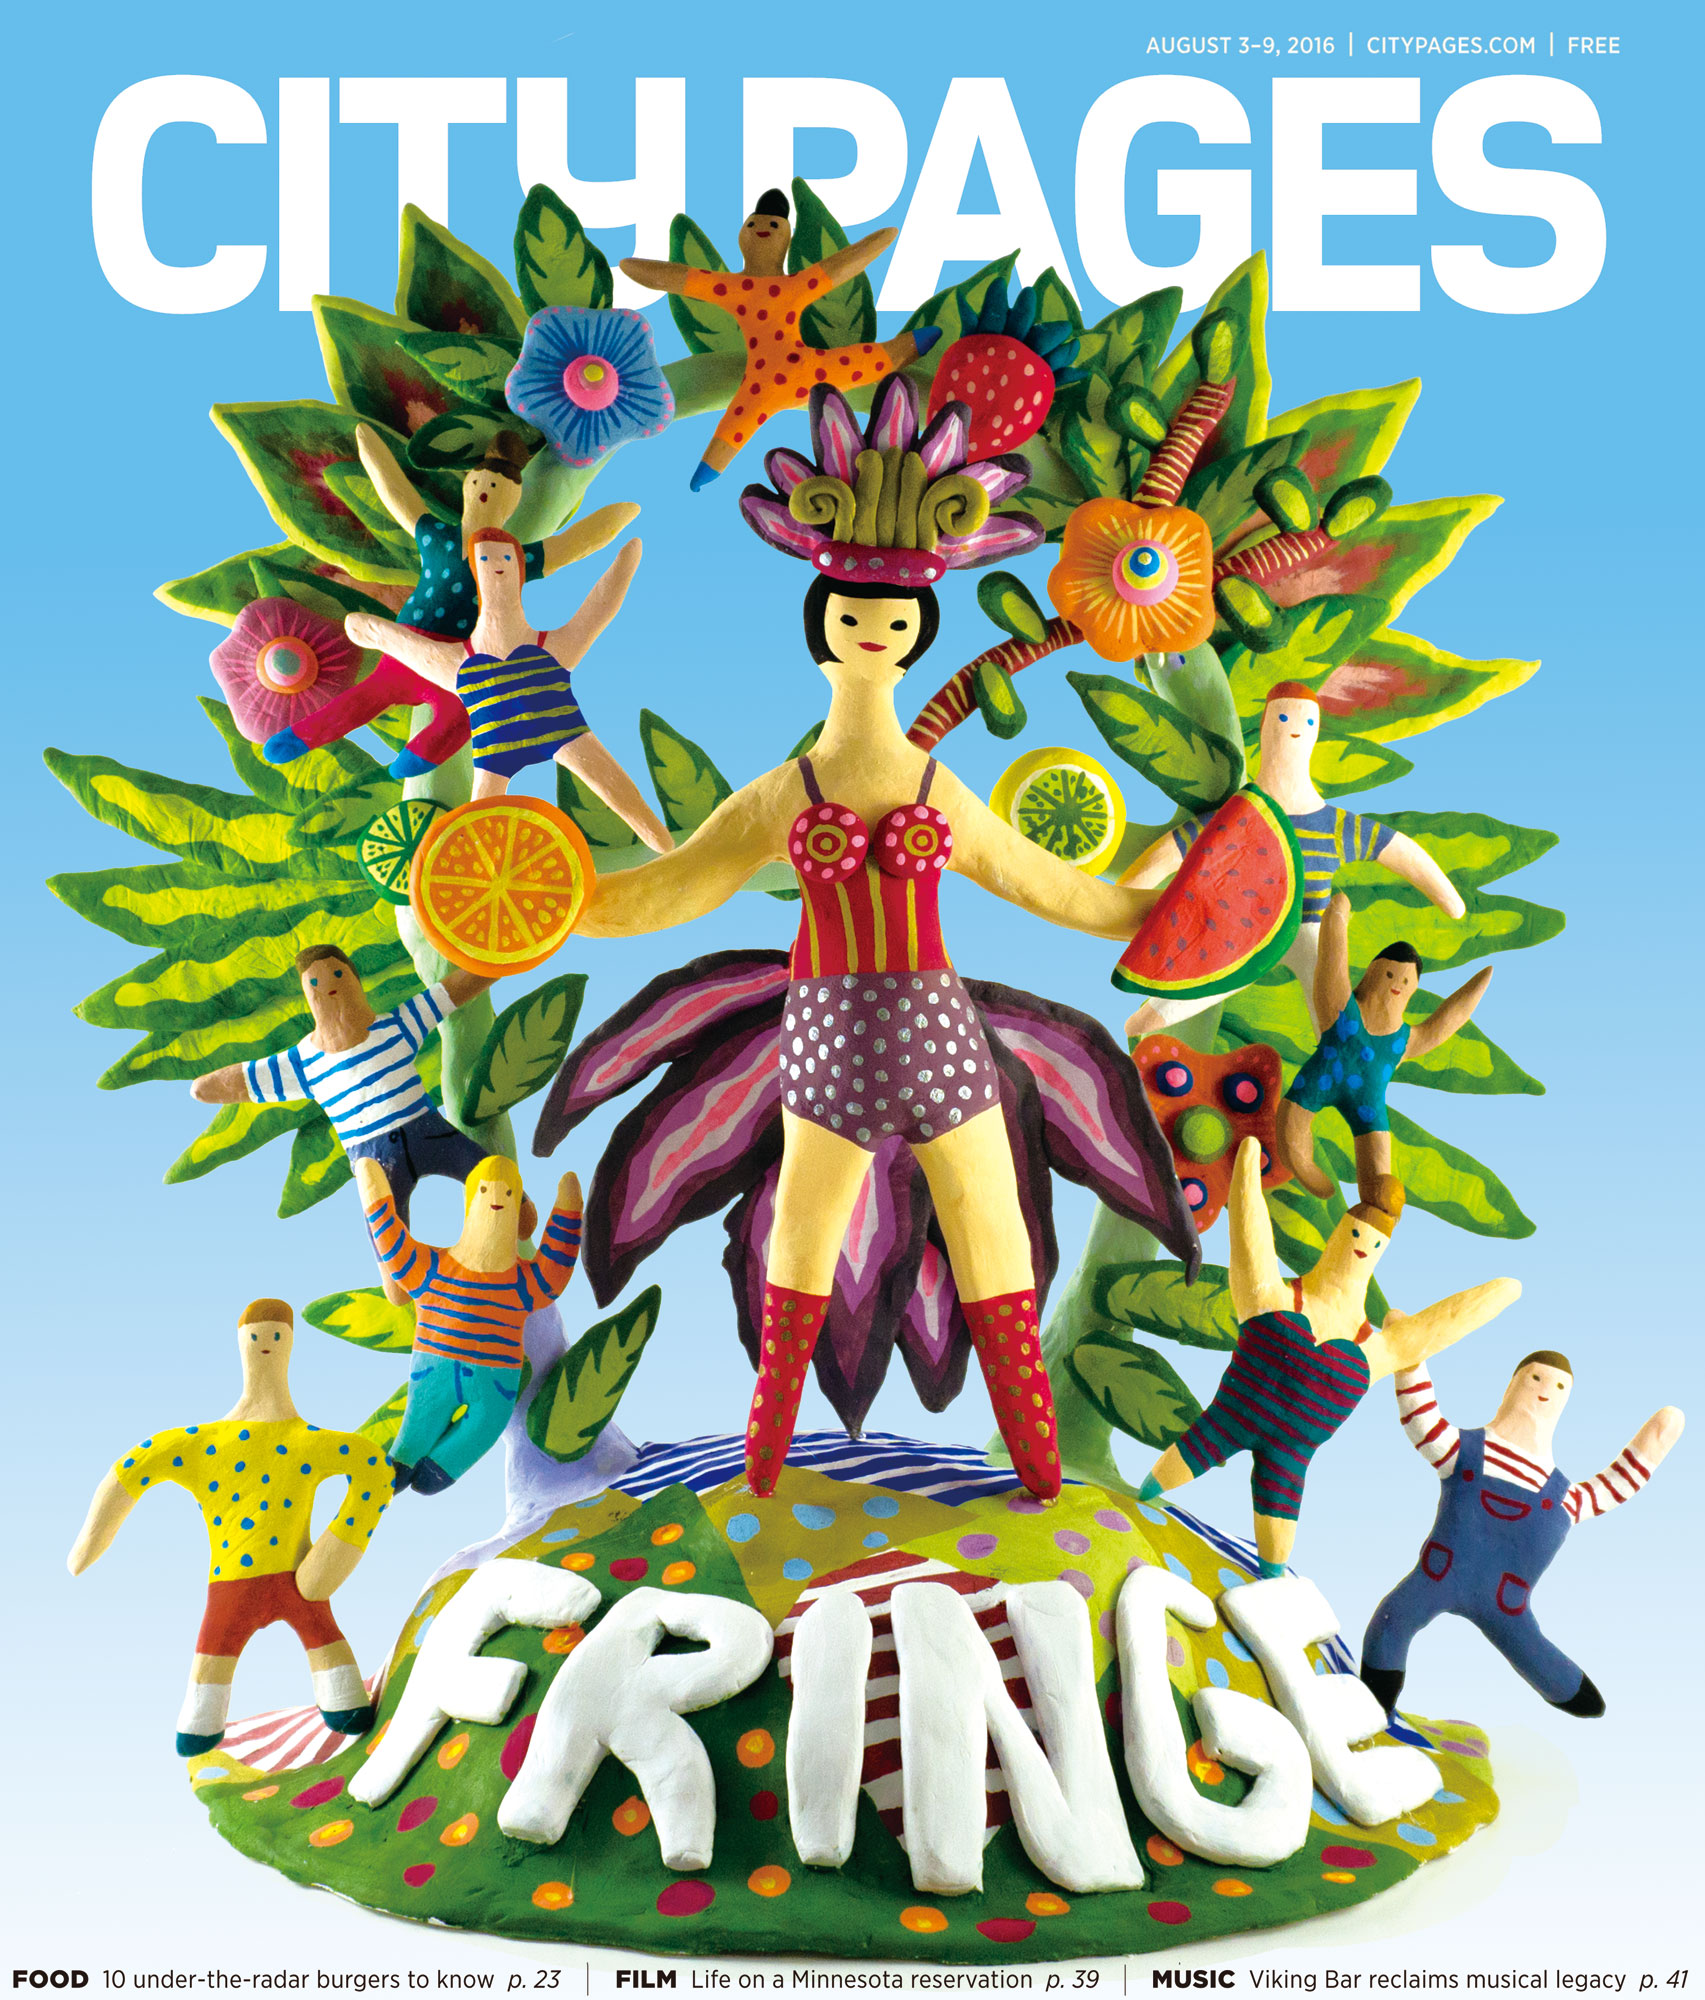 City Pages Magazine